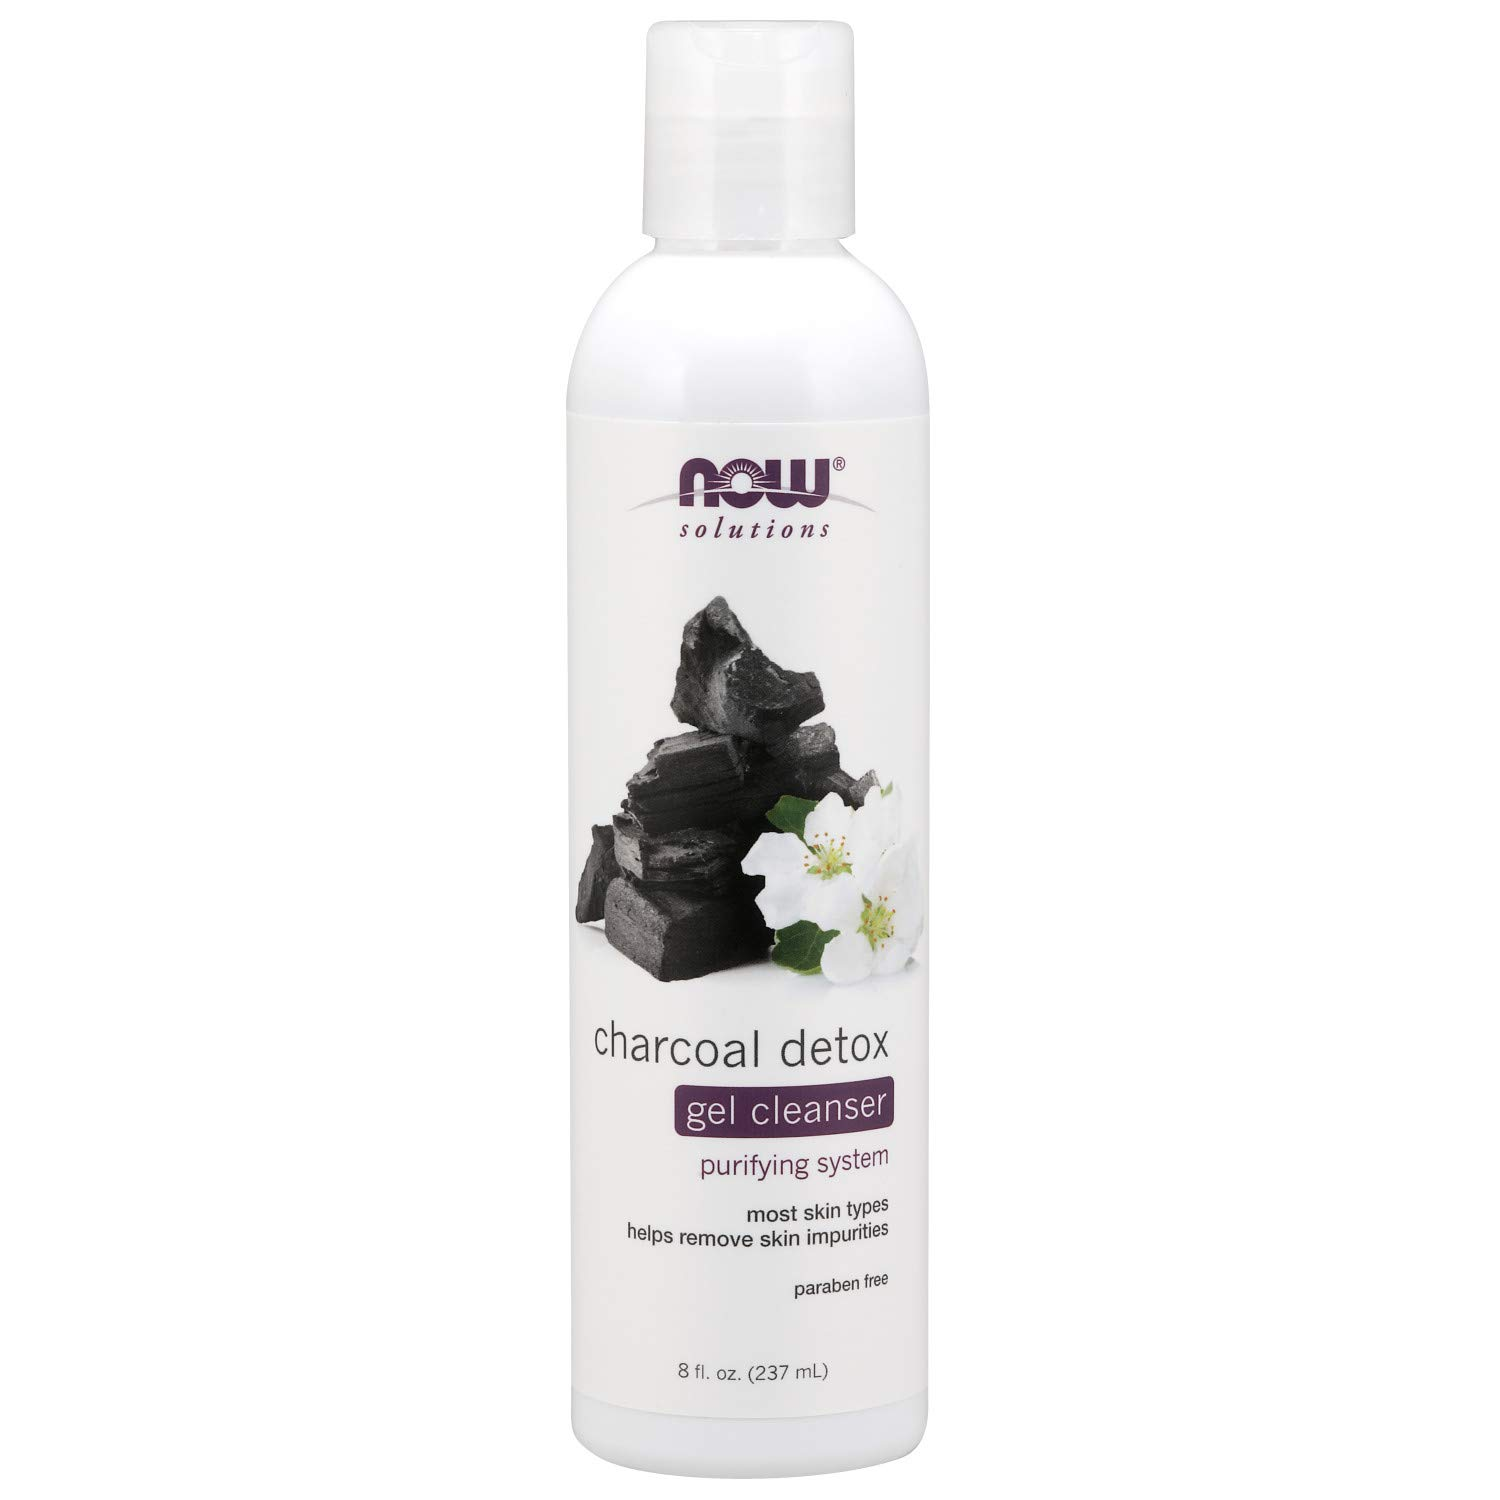 NOW Solutions, Charcoal Detox Gel Cleanser, Purifying System, for Most Skin Types, 8-Ounce